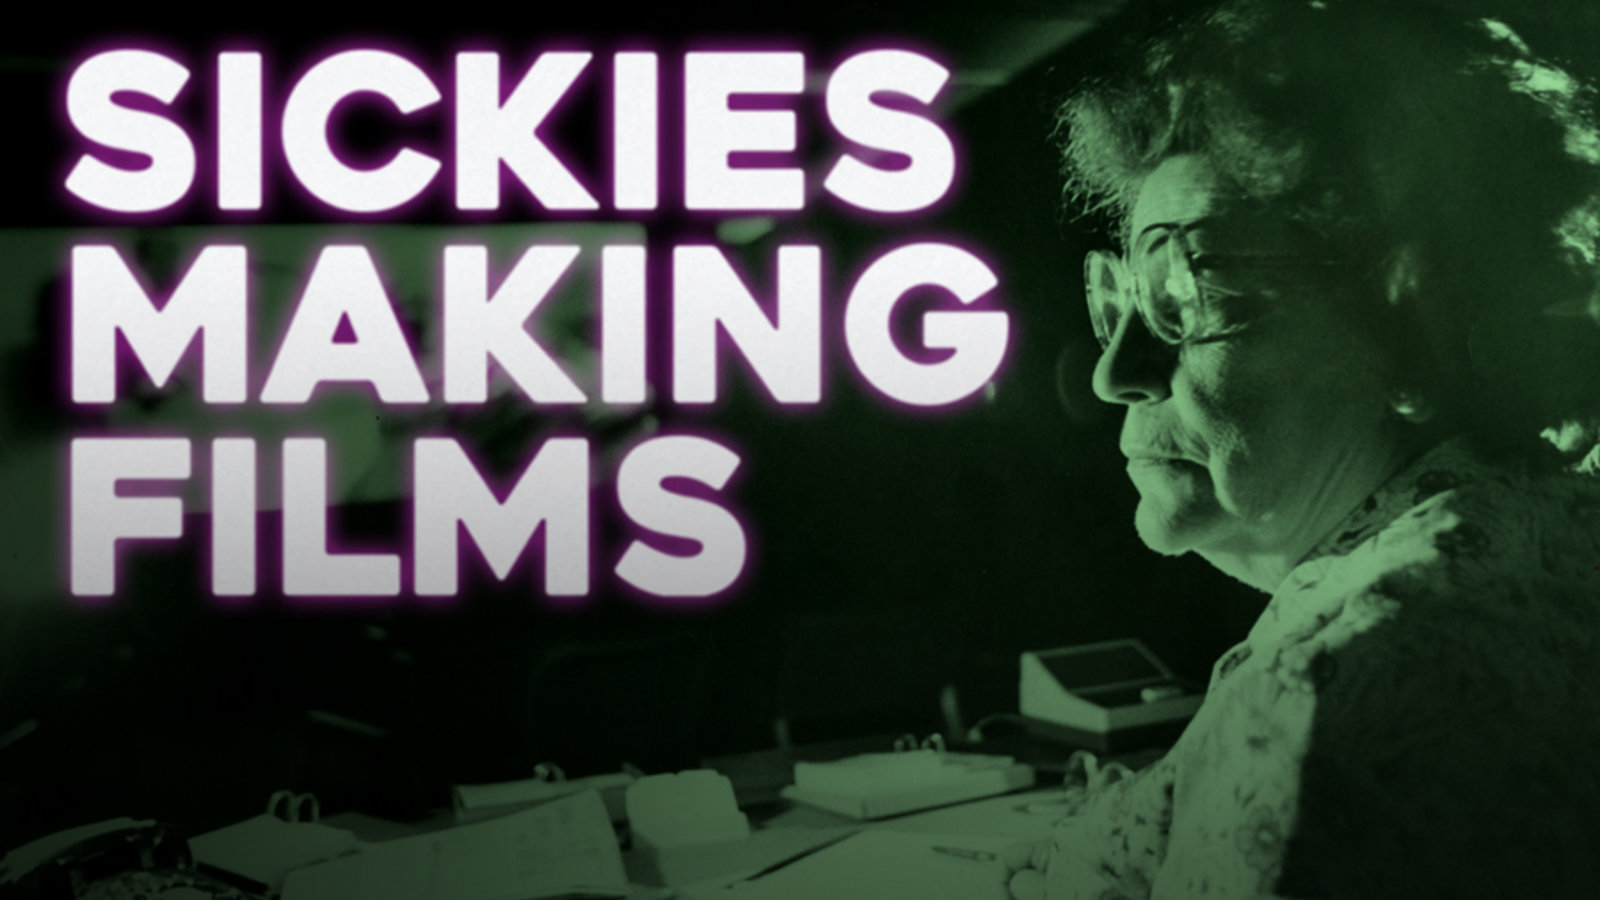 Sickies Making Films - A History of Censoring Film in America